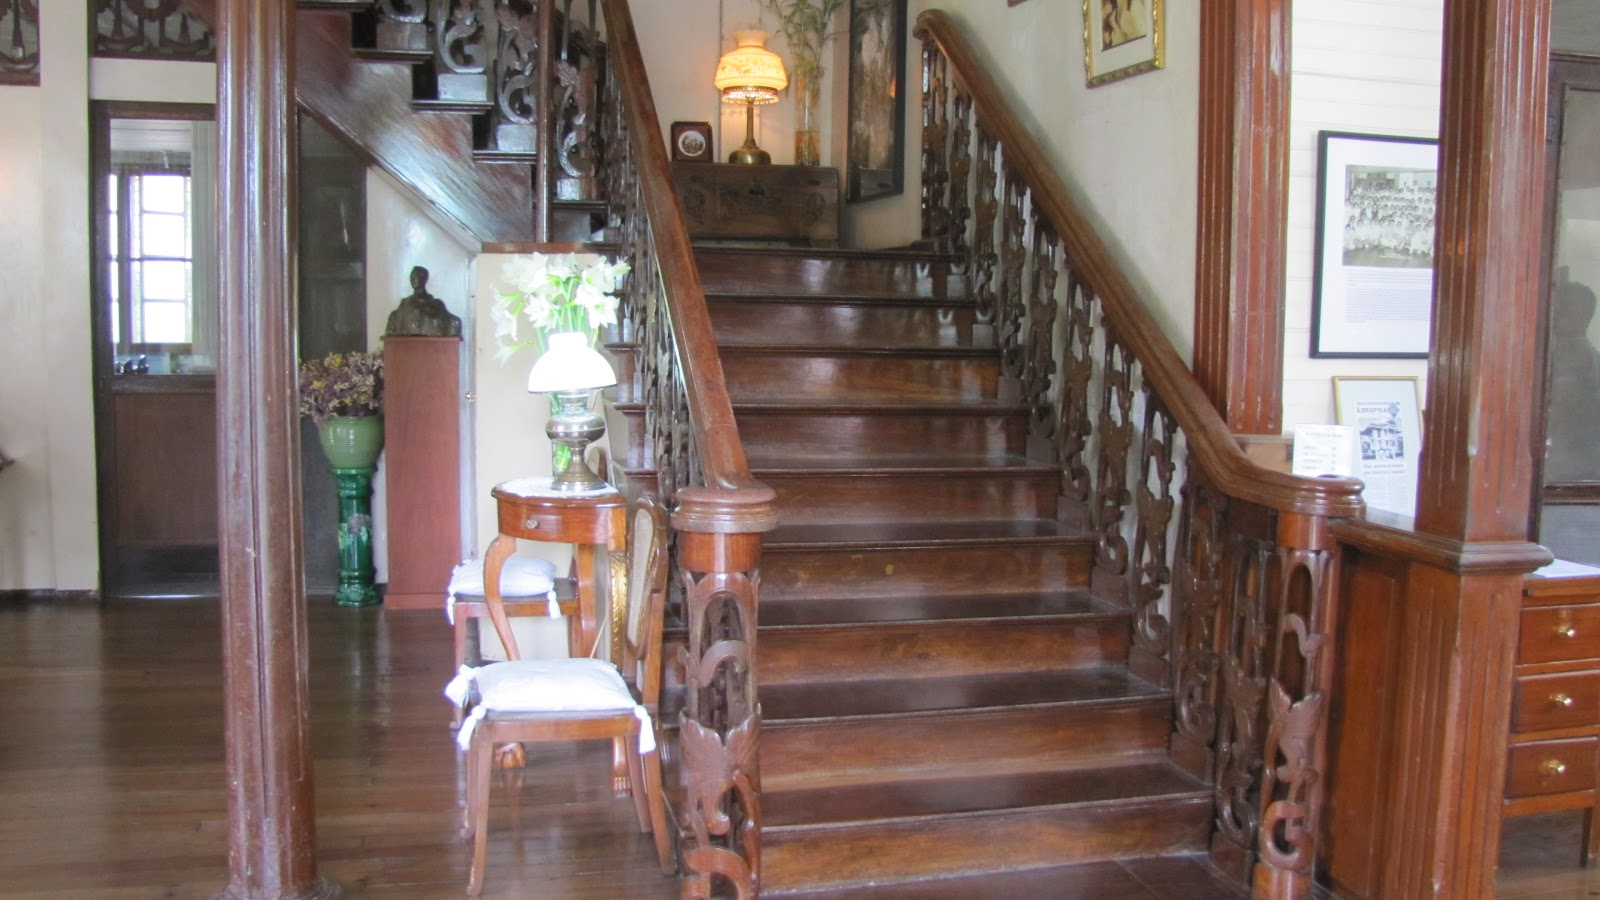 FTW! Blog, Hofileña Museum, Bacolod, #FTWtravels, Balayong Stairs